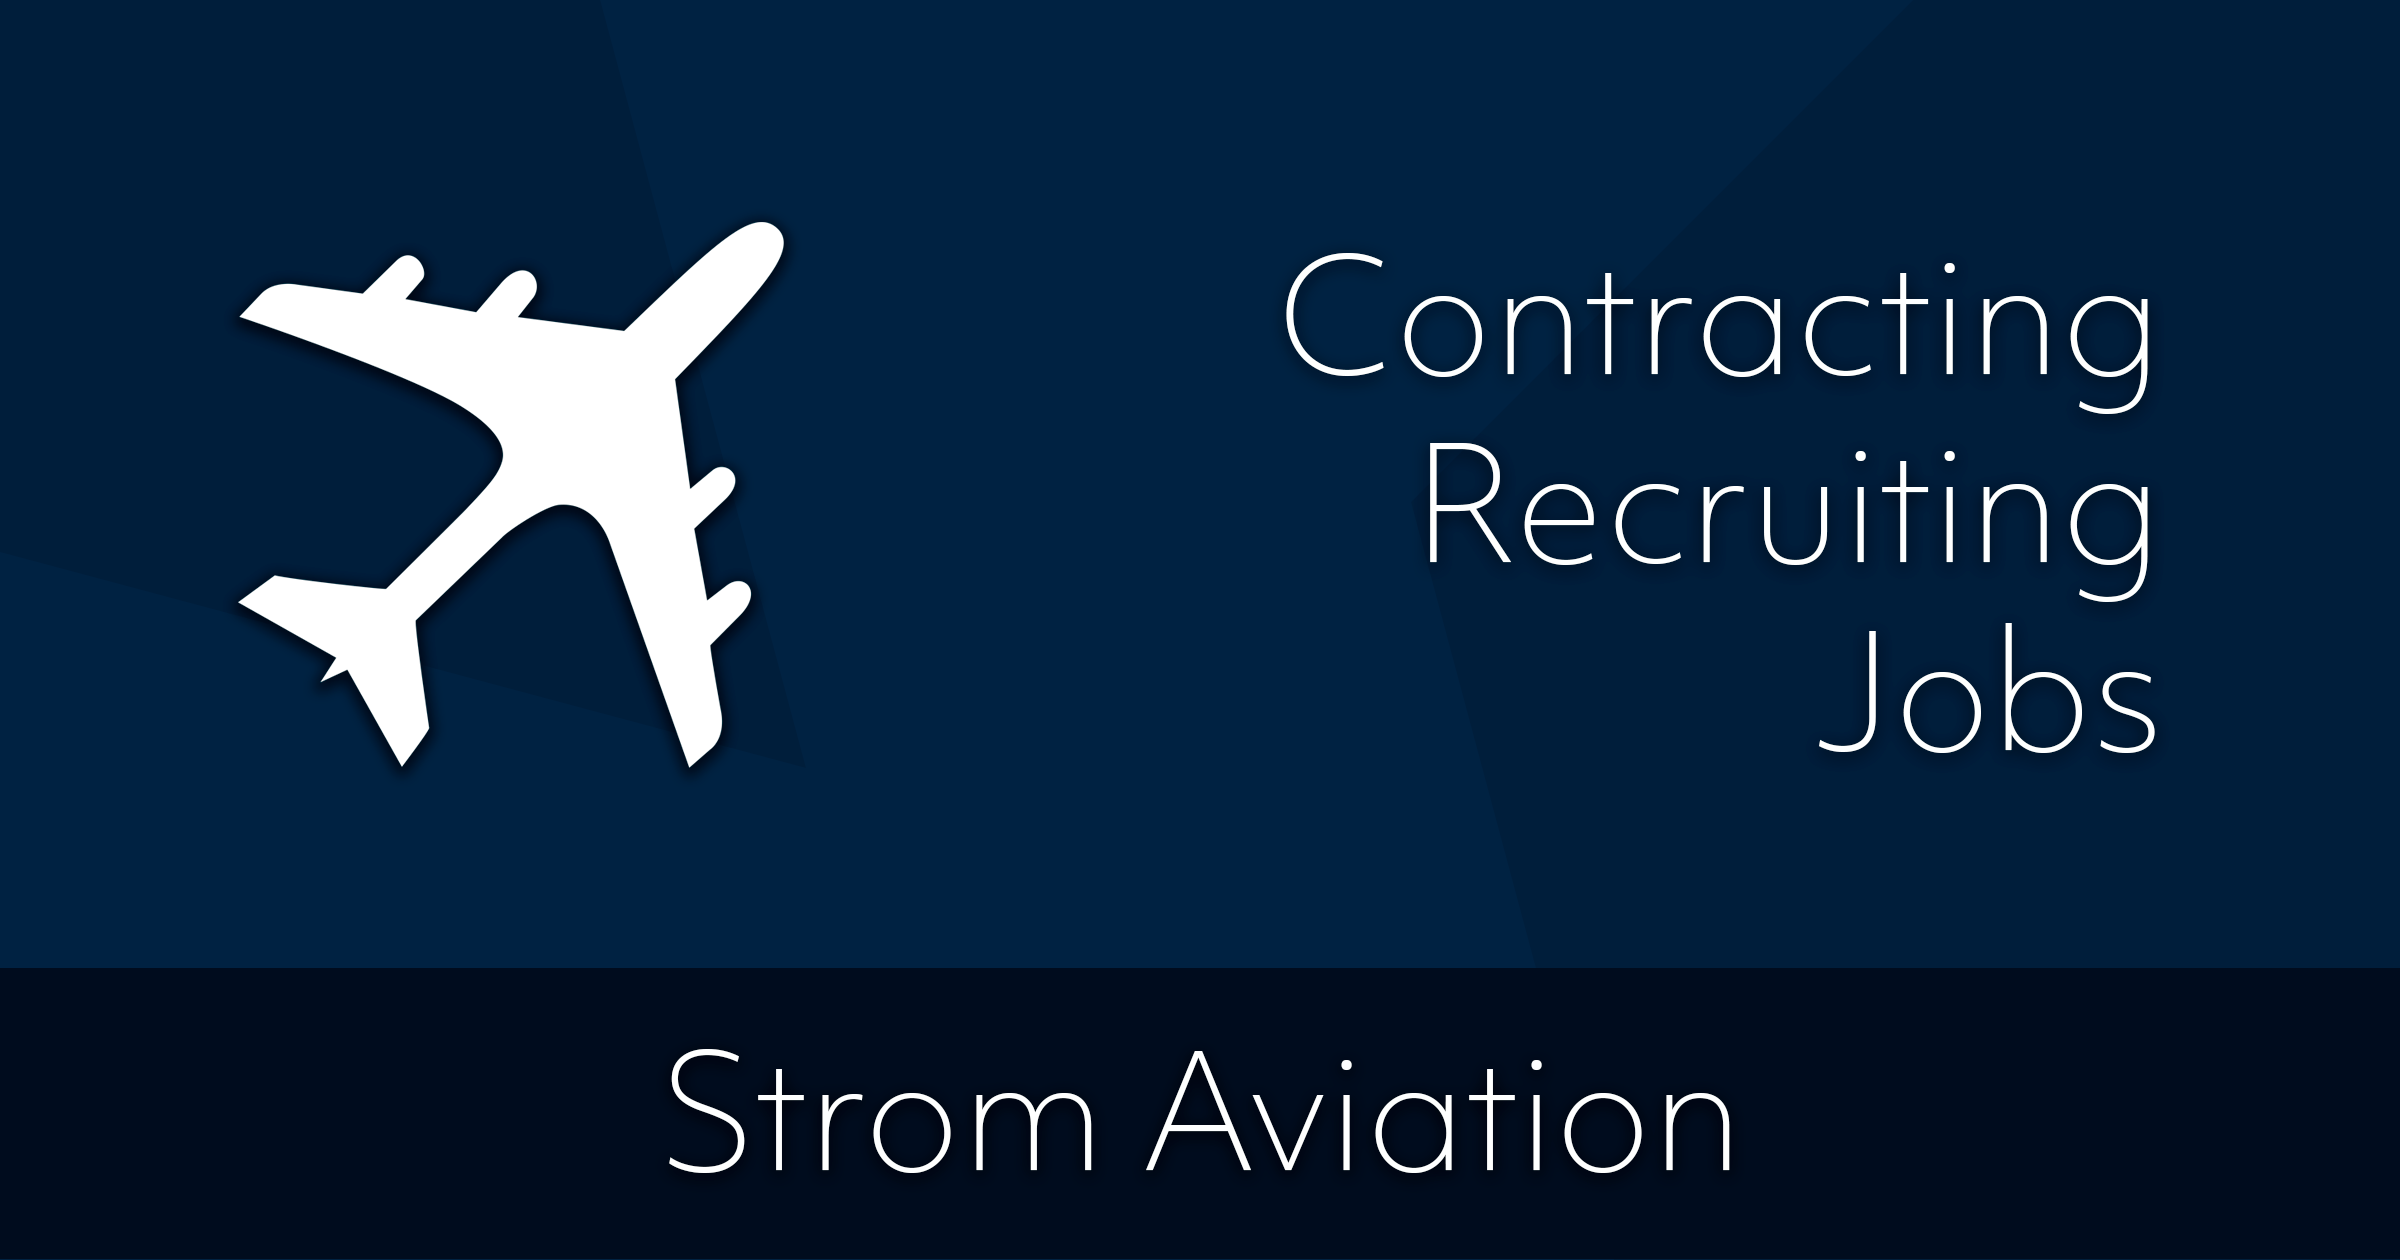 Strom Aviation Inc Staffing Openings Jobs Aerospace Wire Harness Ties